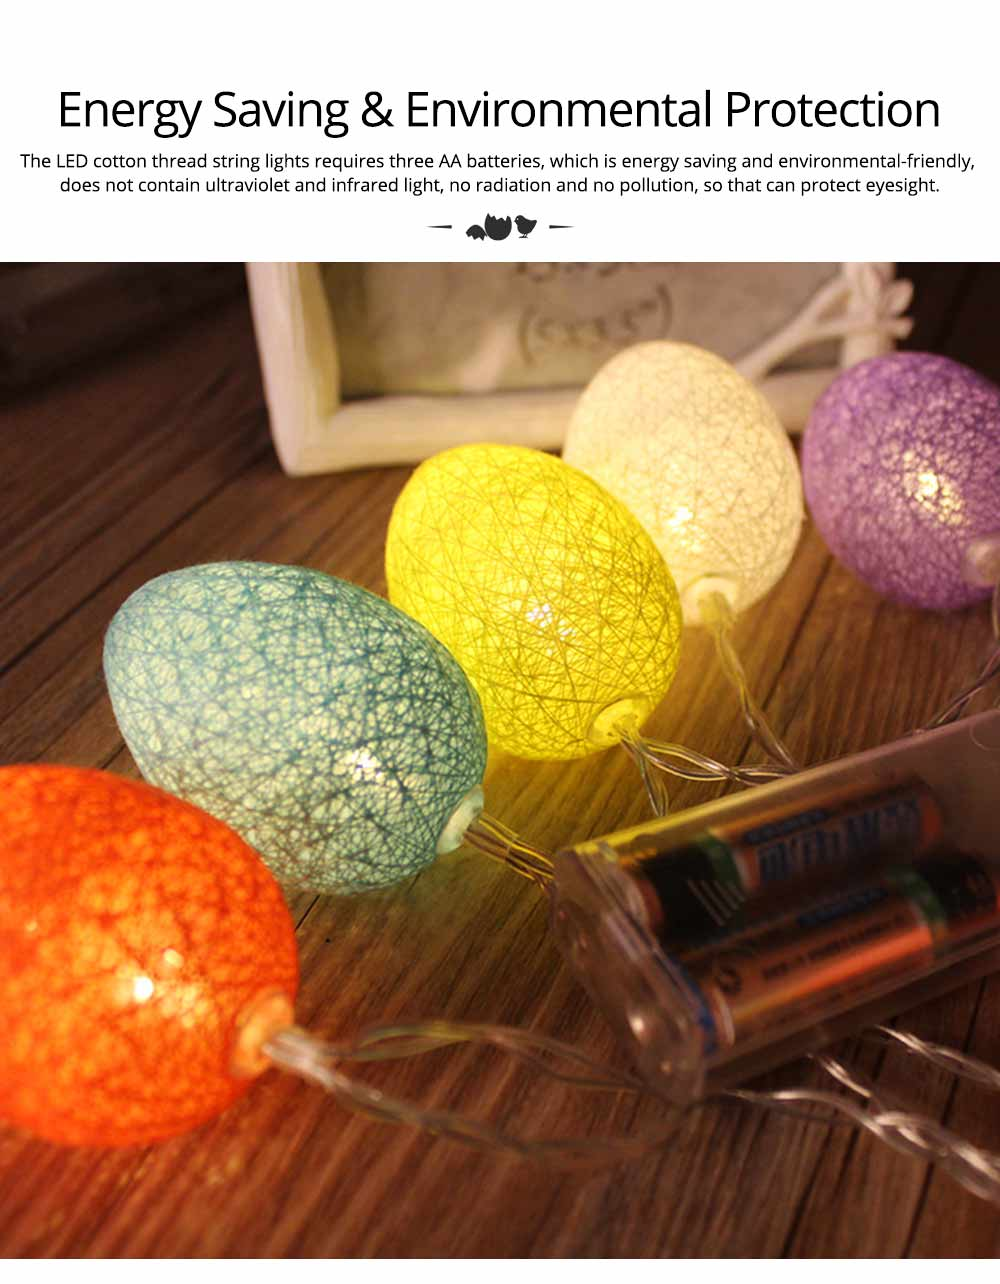 Easter Egg String Lights, Cotton Thread Battery Operated LED String Egg Lamp Home Party Decor 5